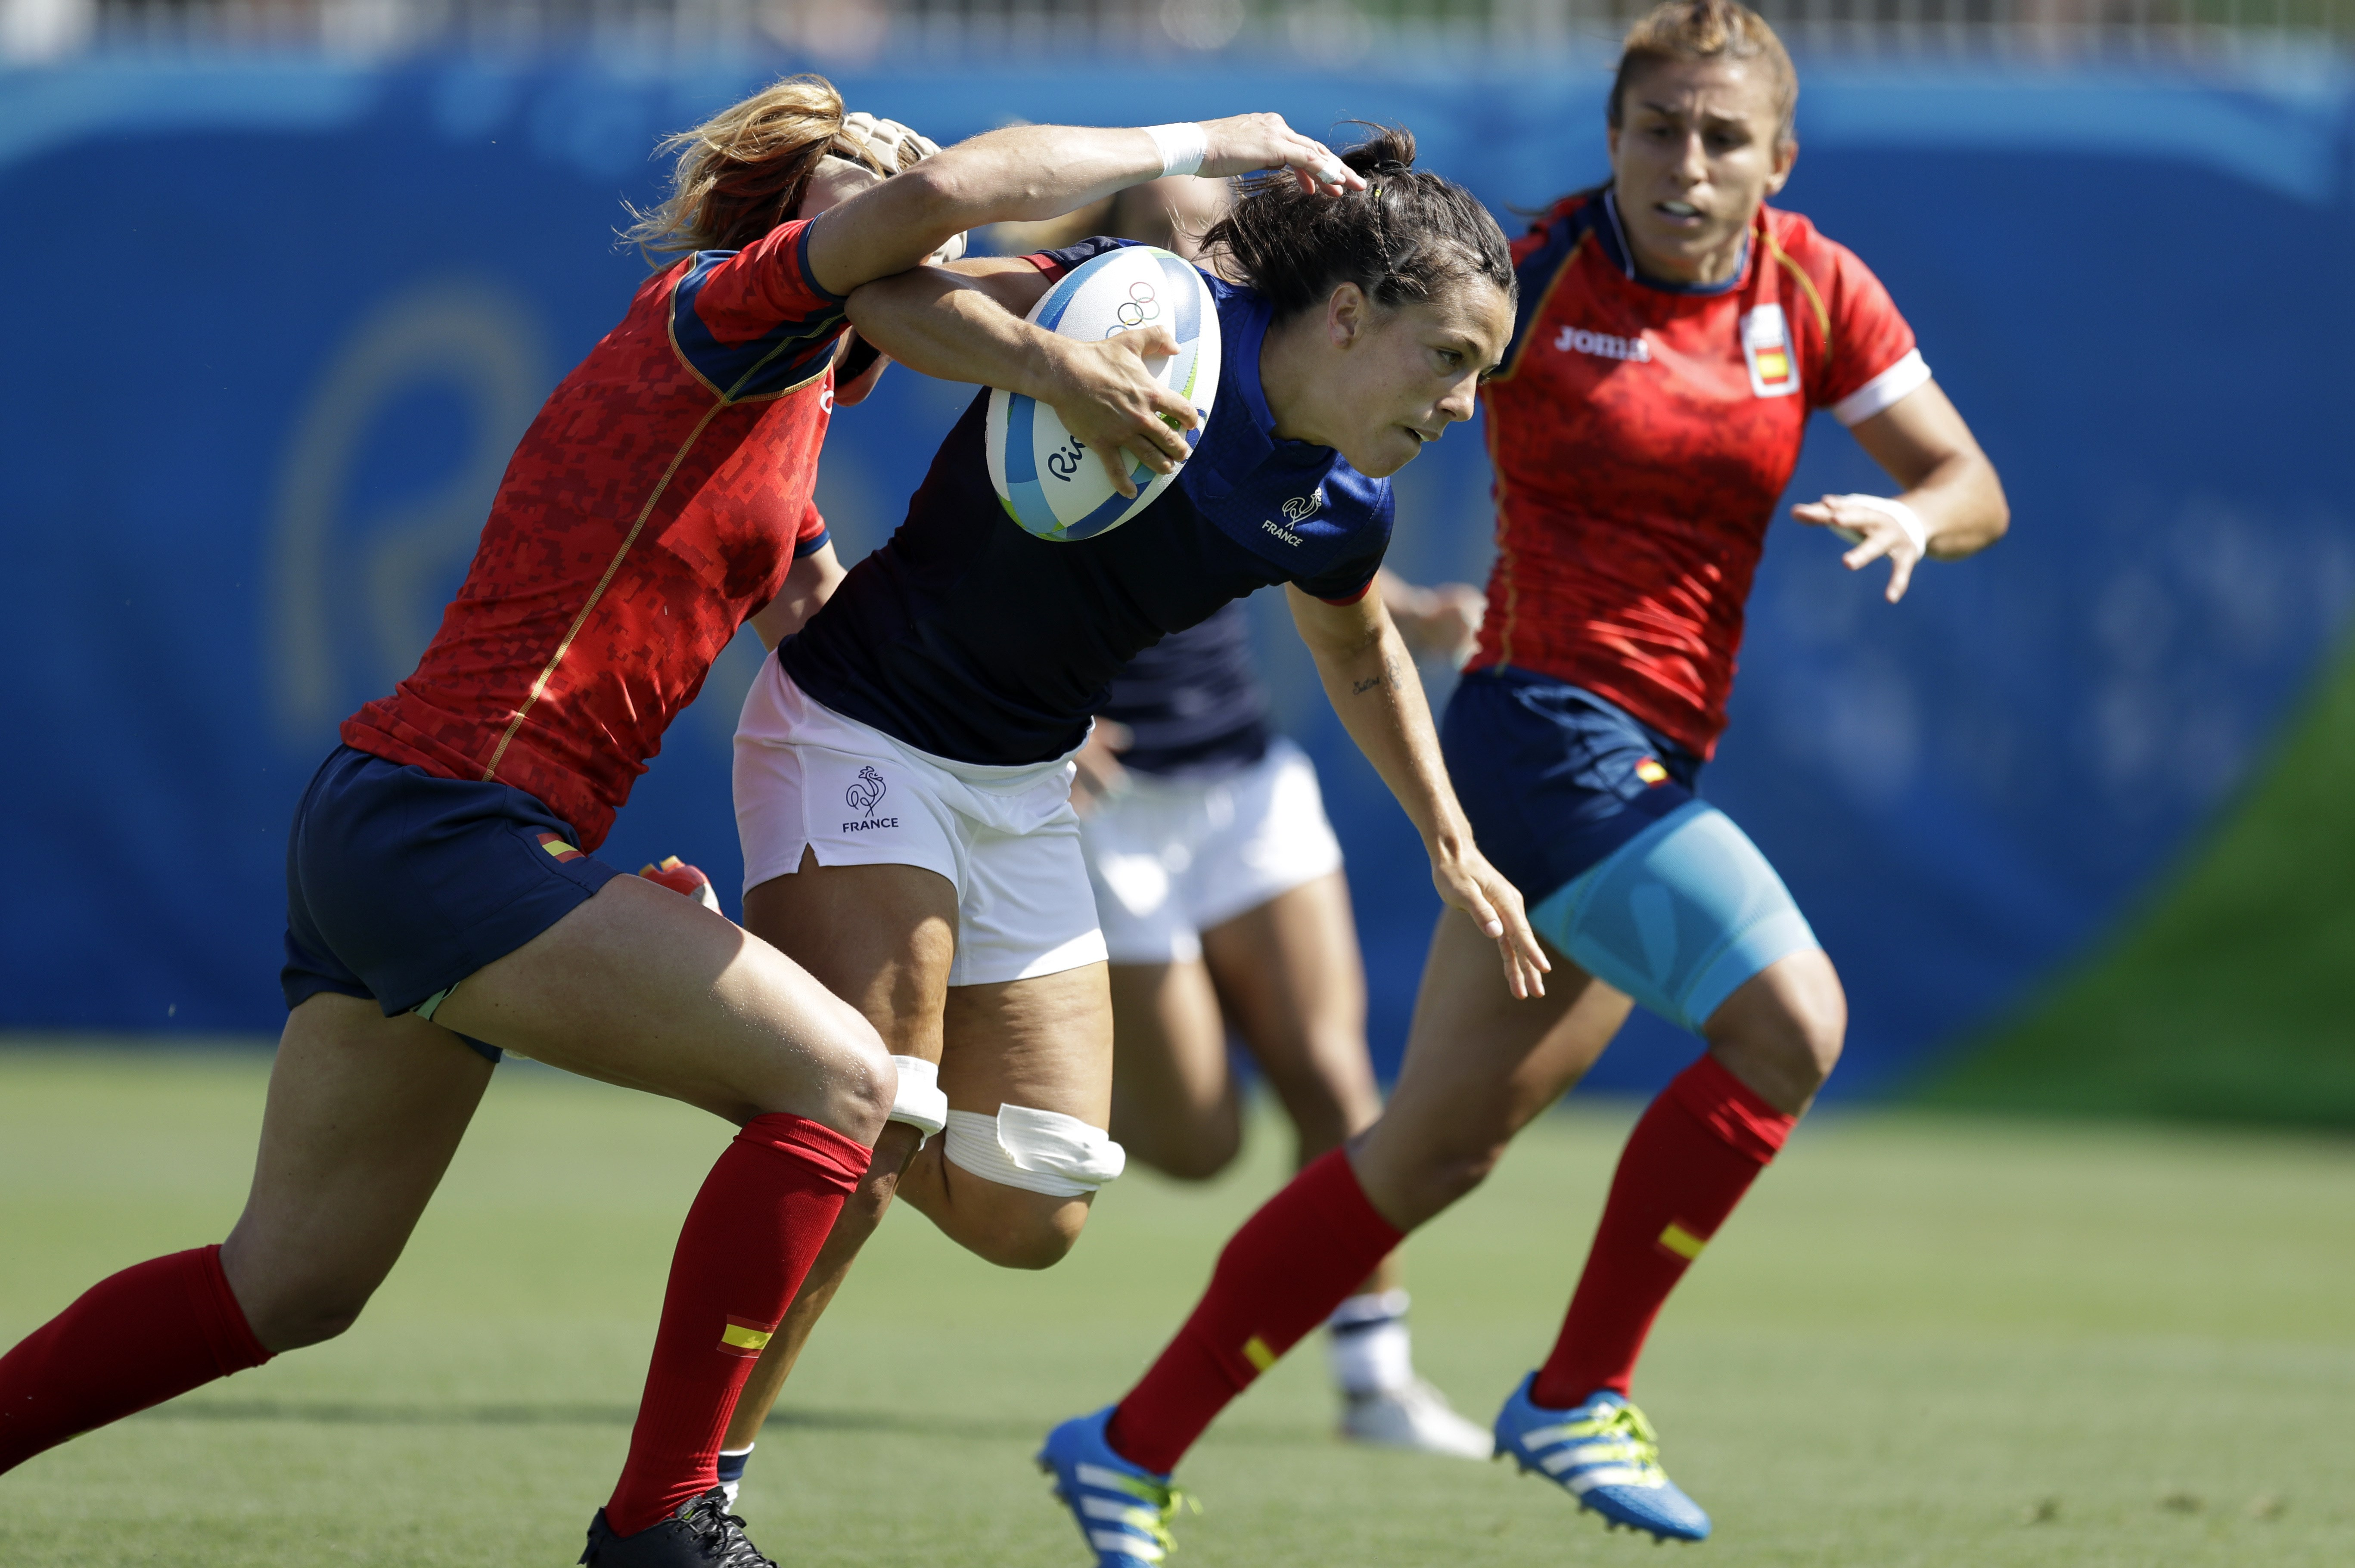 France's Elodie Guiglion, middle, breaks away from Spain's Berta Garcia, left, during the women's rugby sevens match between France and Spain at the Summer Olympics in Rio de Janeiro, Brazil, Saturday, Aug. 6, 2016. (AP Photo/Themba Hadebe)